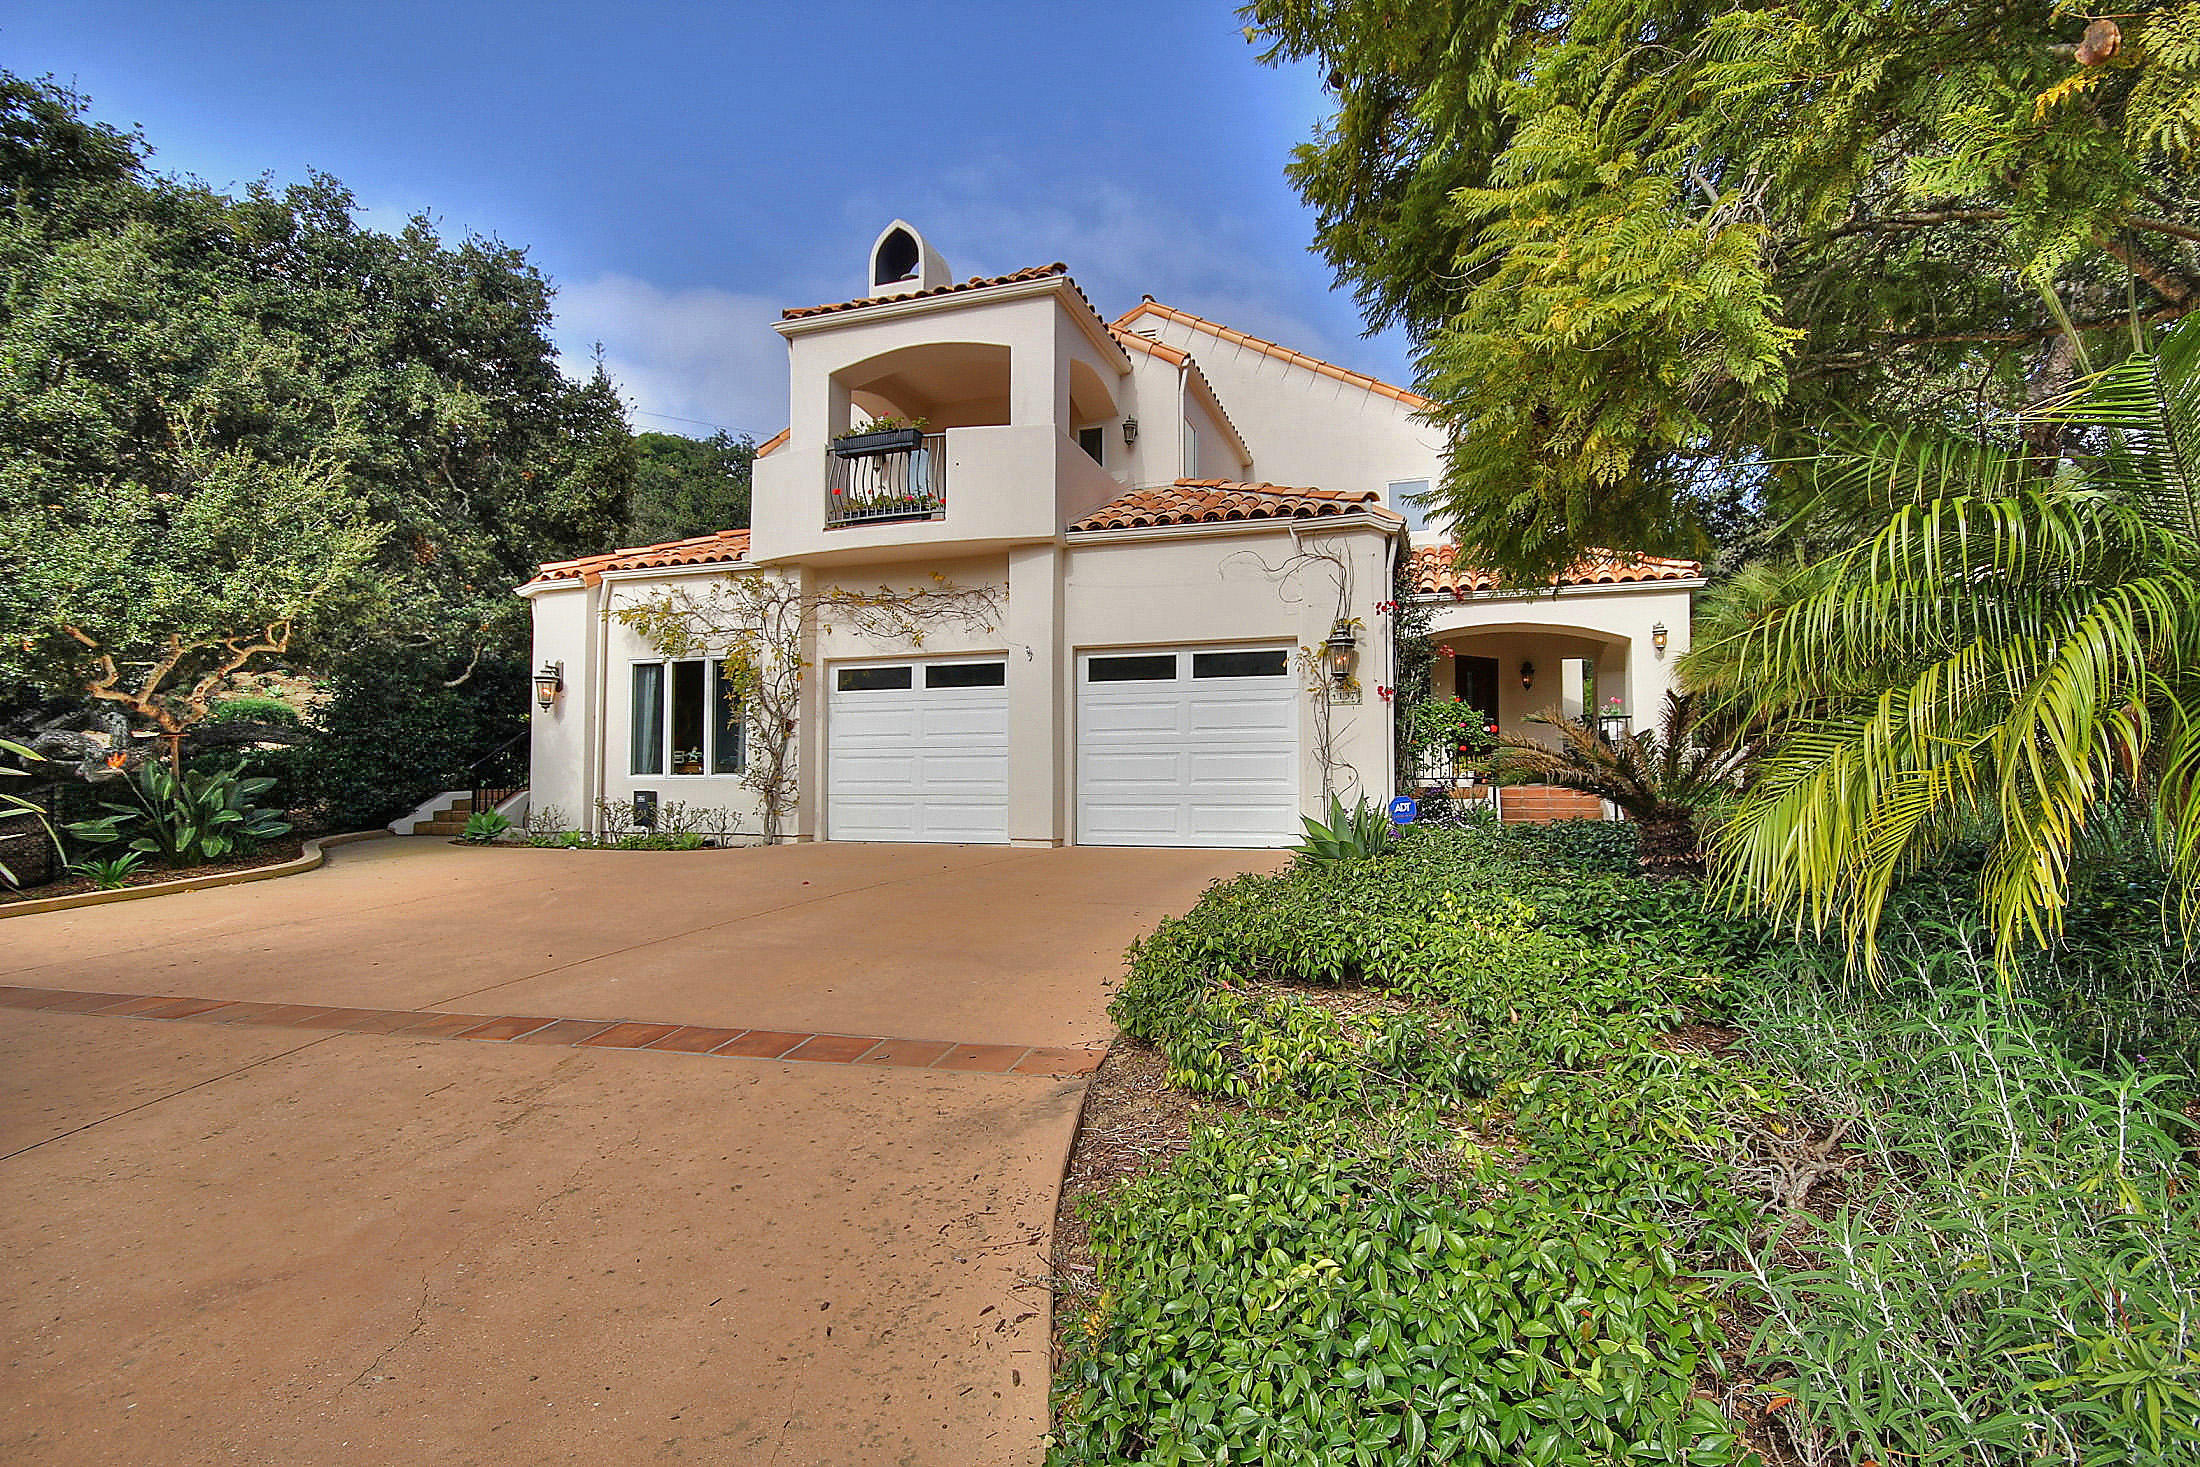 Property photo for 4137 Hidden Oaks Rd Santa Barbara, California 93105 - 15-361